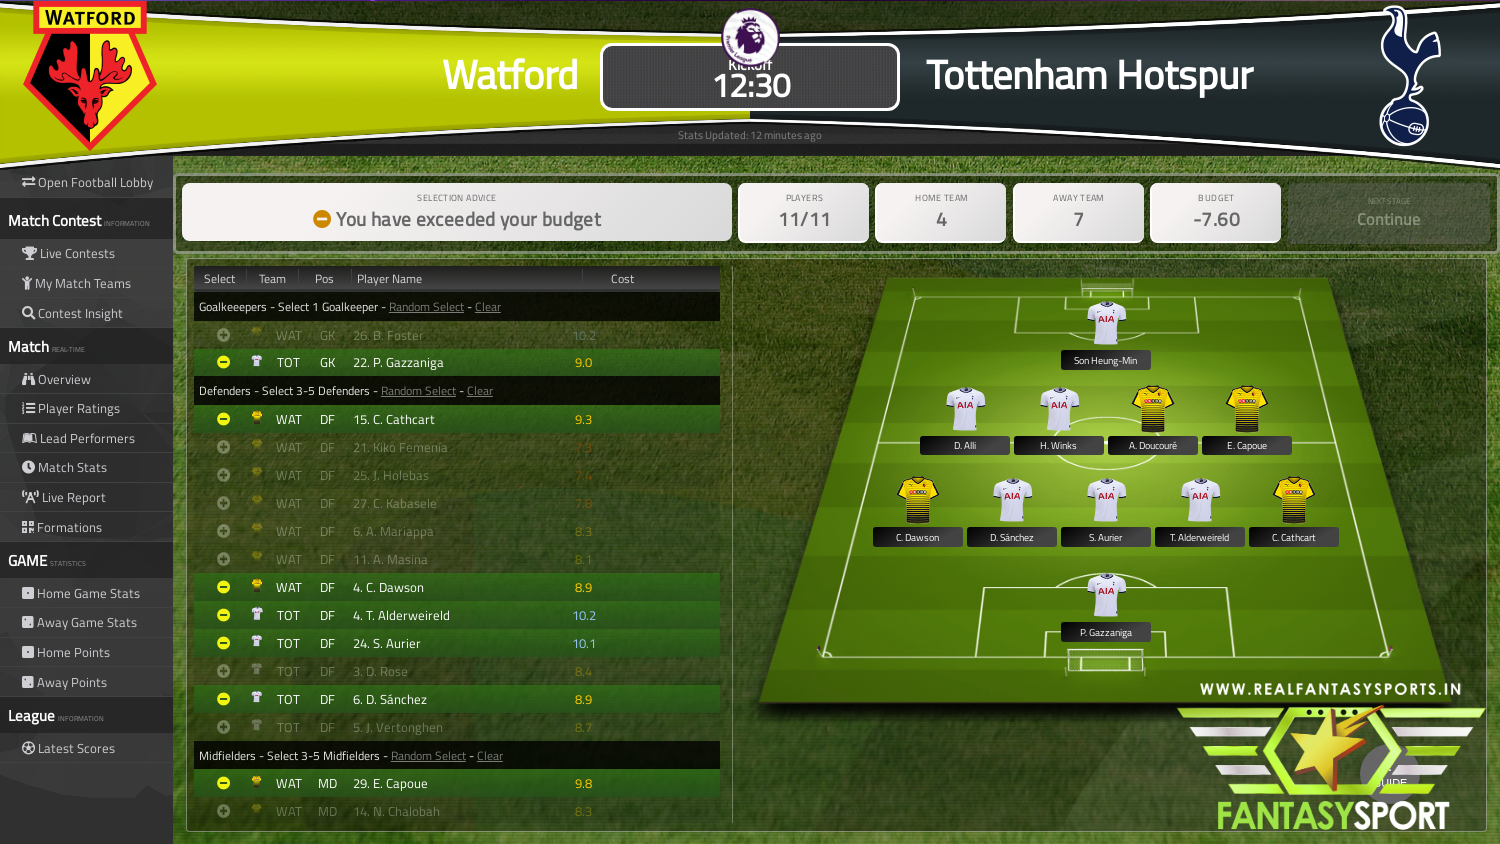 Watford Vs Tottenham Hotspur Fantasy Football Team